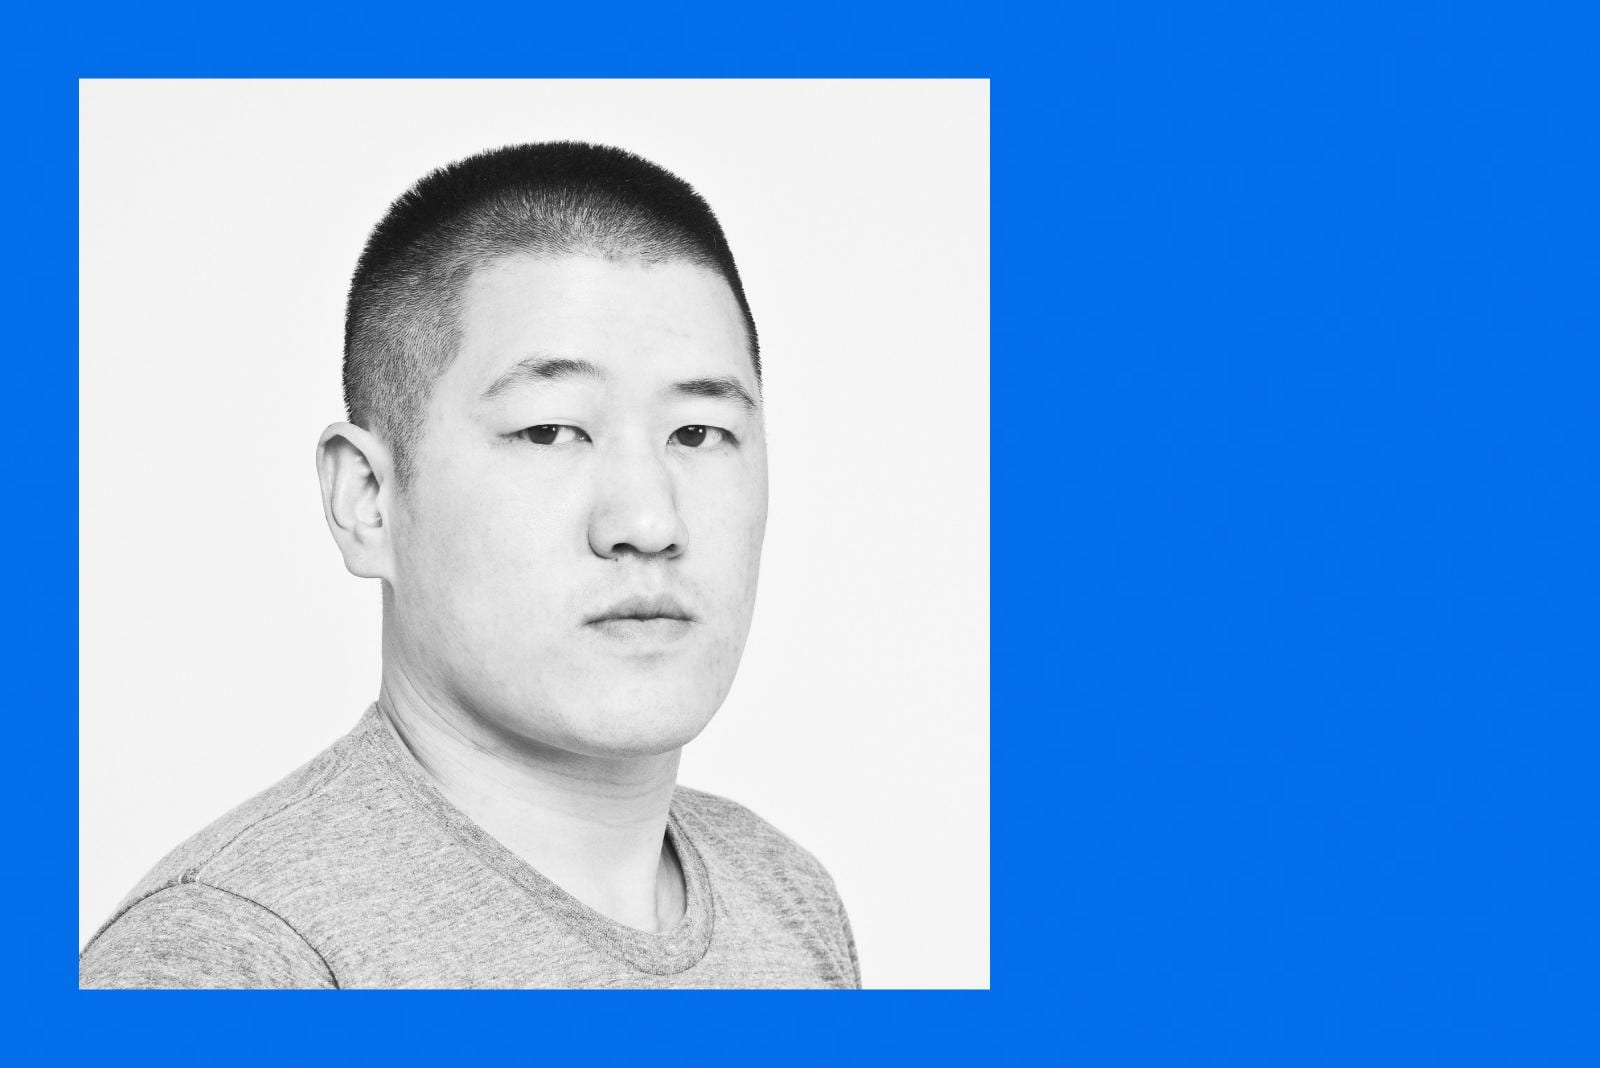 Cliff Kuang headshot, UX Design lead at Google.